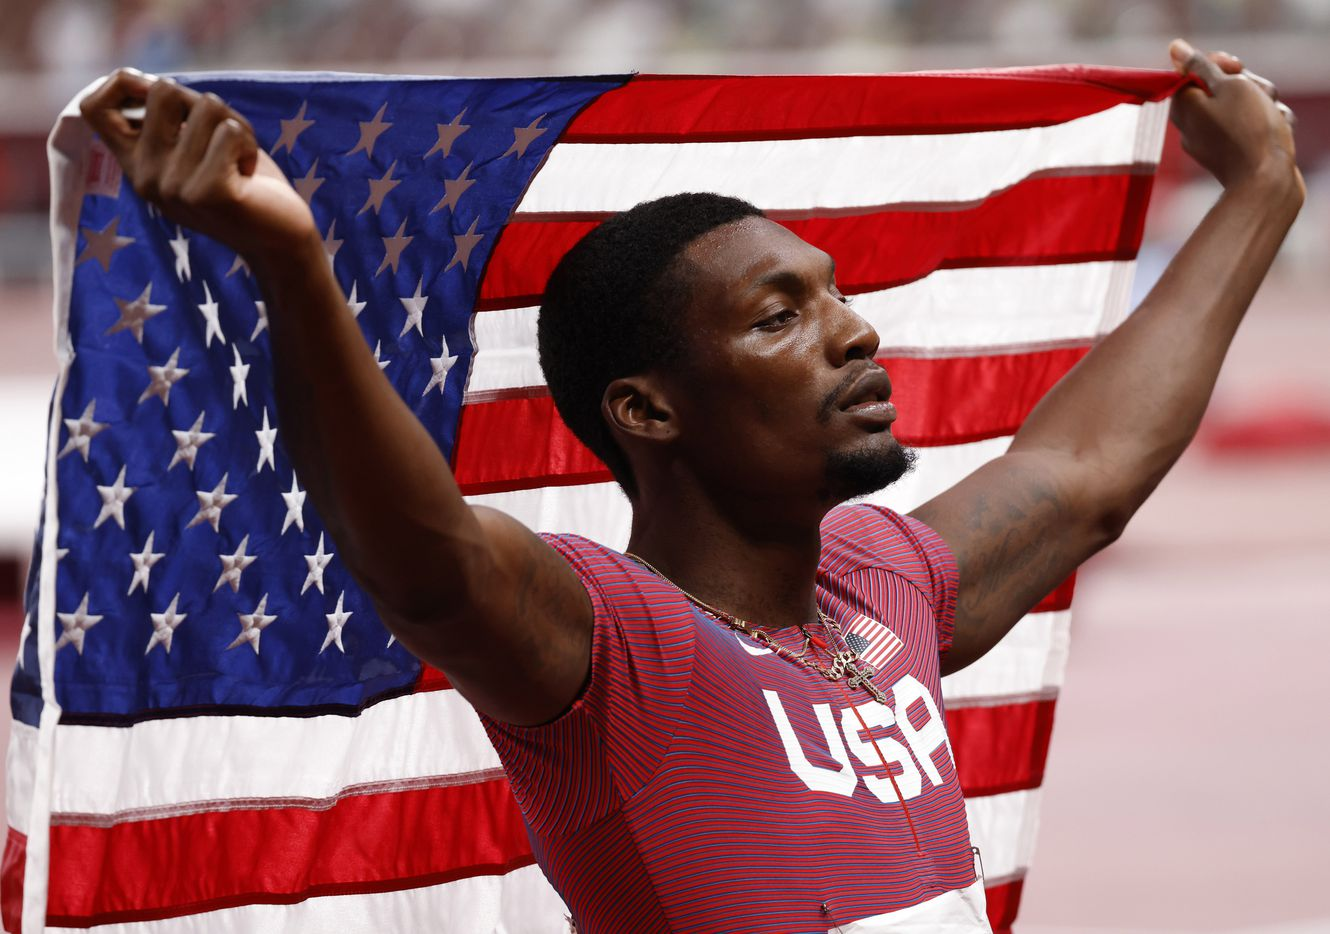 USA's Fred Kerley celebrates after finishing in second place in the men's 100 meter final during the postponed 2020 Tokyo Olympics at Olympic Stadium, on Sunday, August 1, 2021, in Tokyo, Japan. Kerley took second place with a time of 9.84 seconds. (Vernon Bryant/The Dallas Morning News)